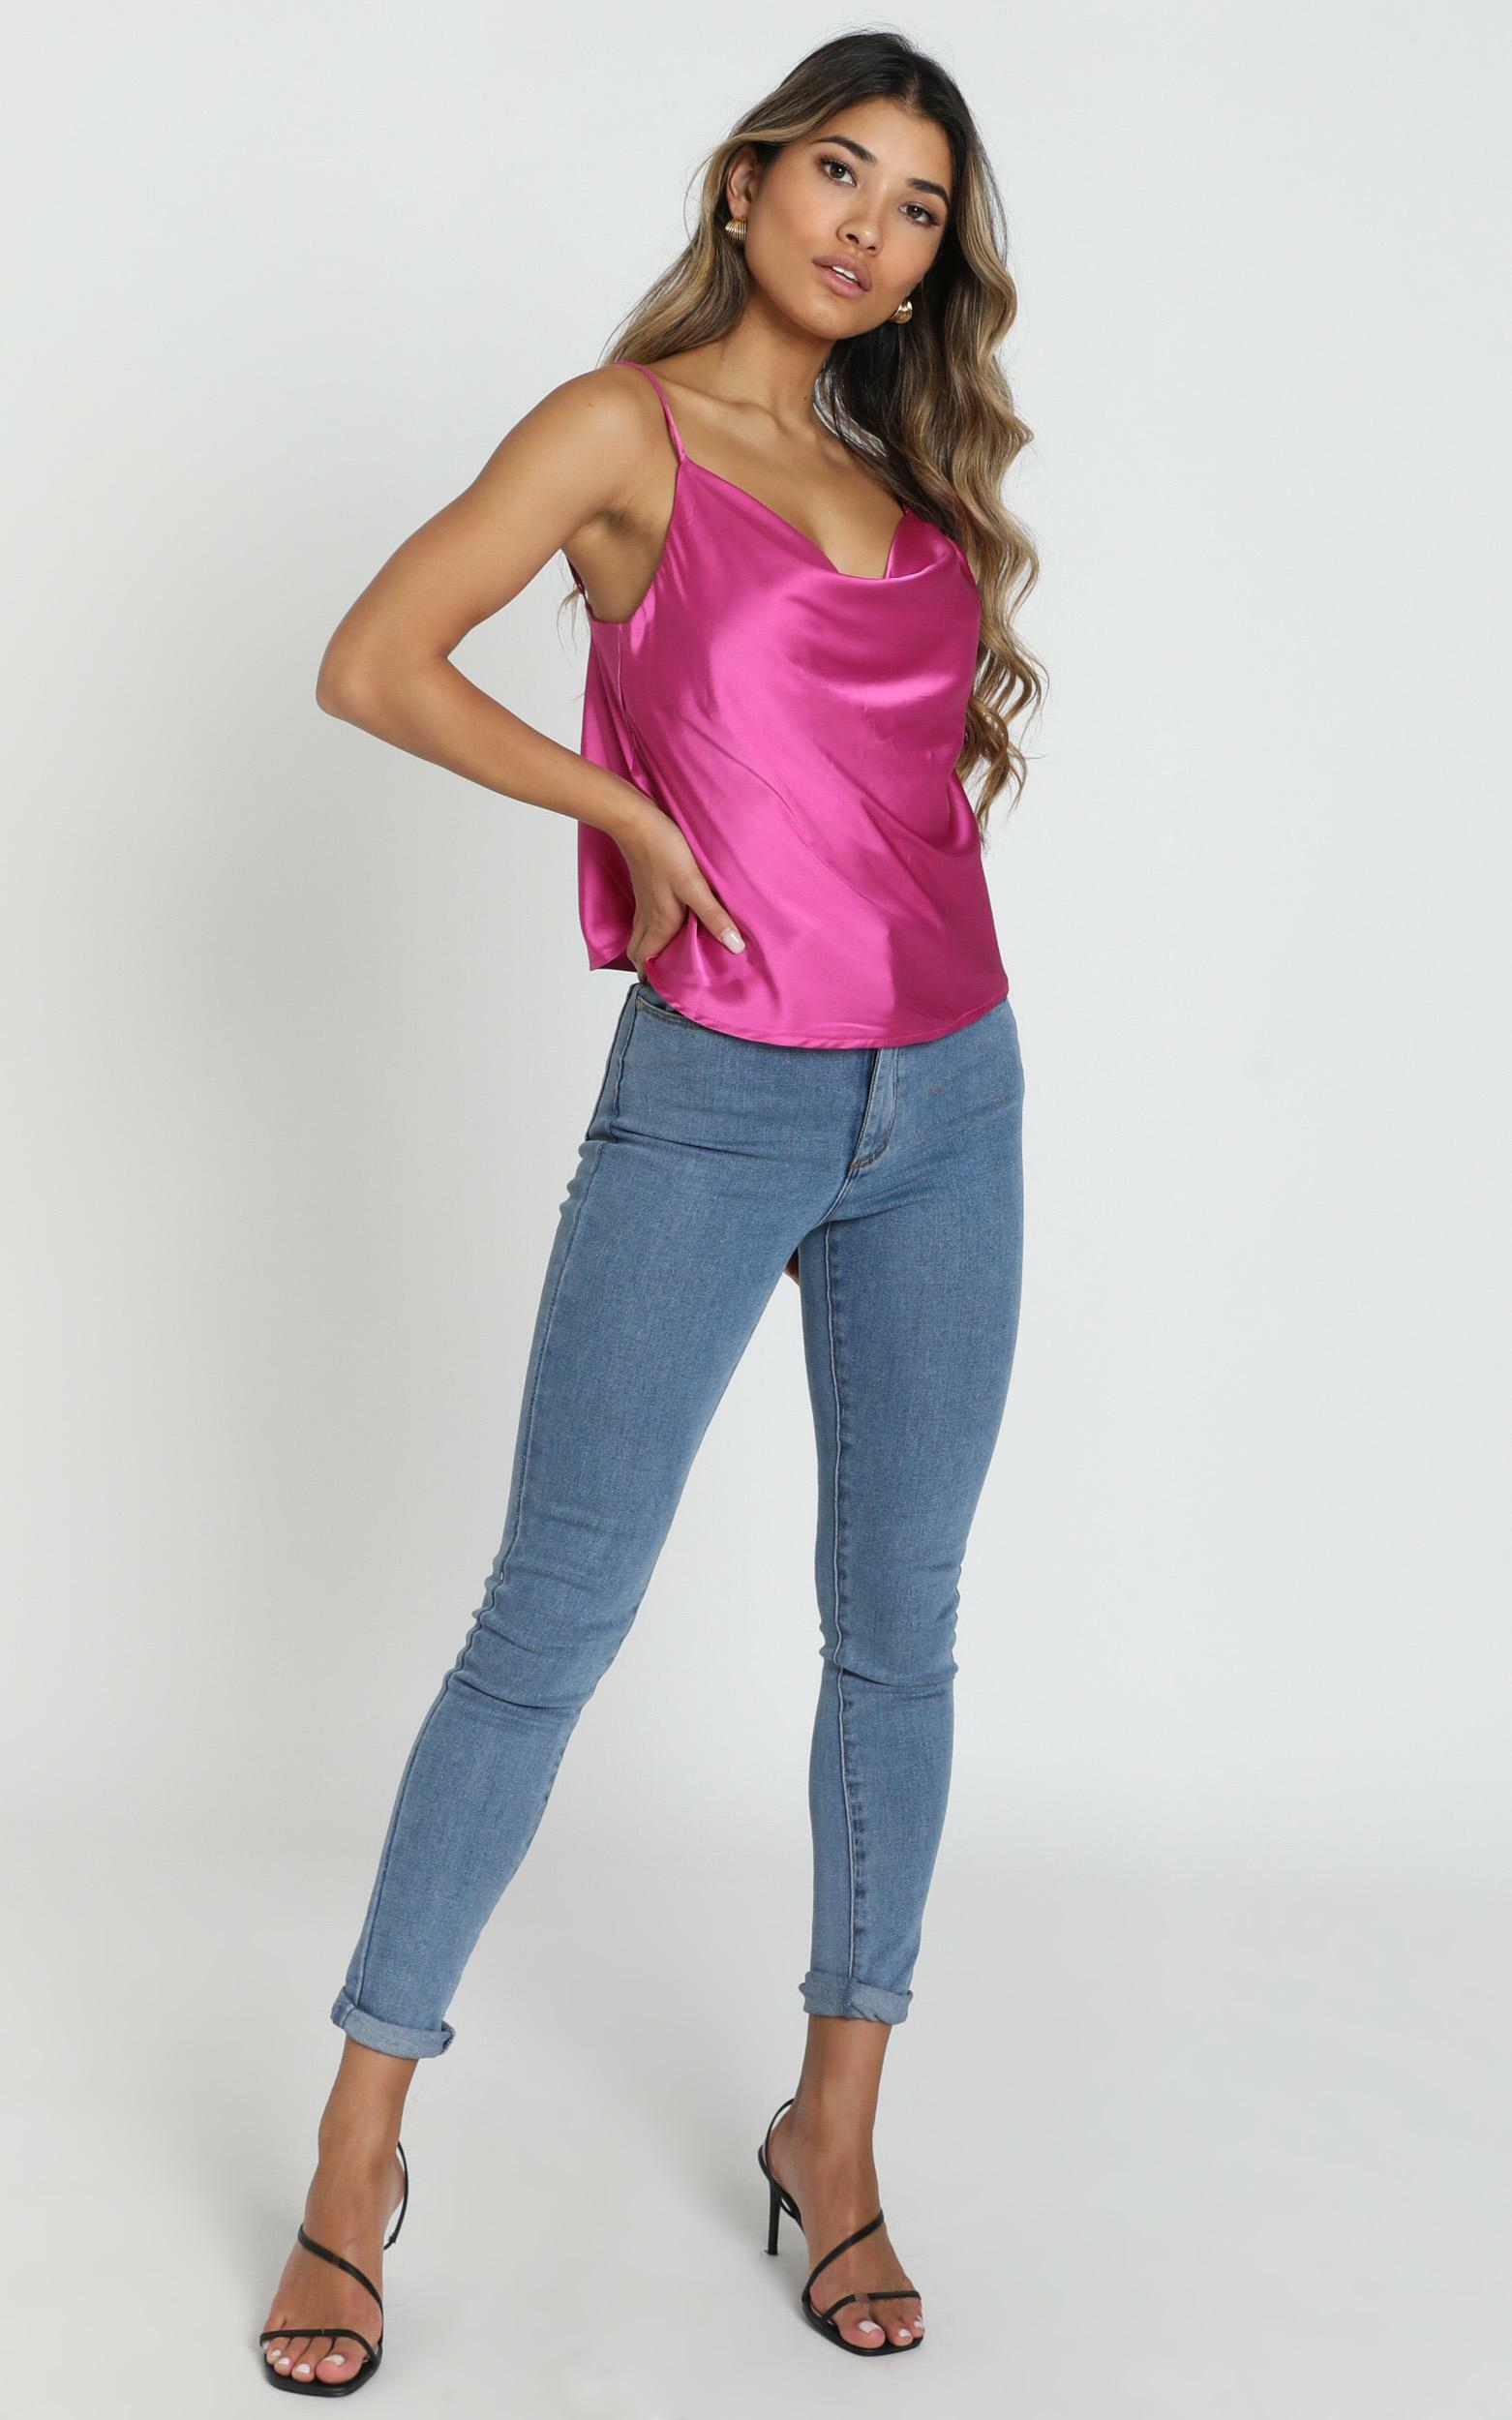 Straight Line Top in hot pink satin - 20 (XXXXL), Pink, hi-res image number null